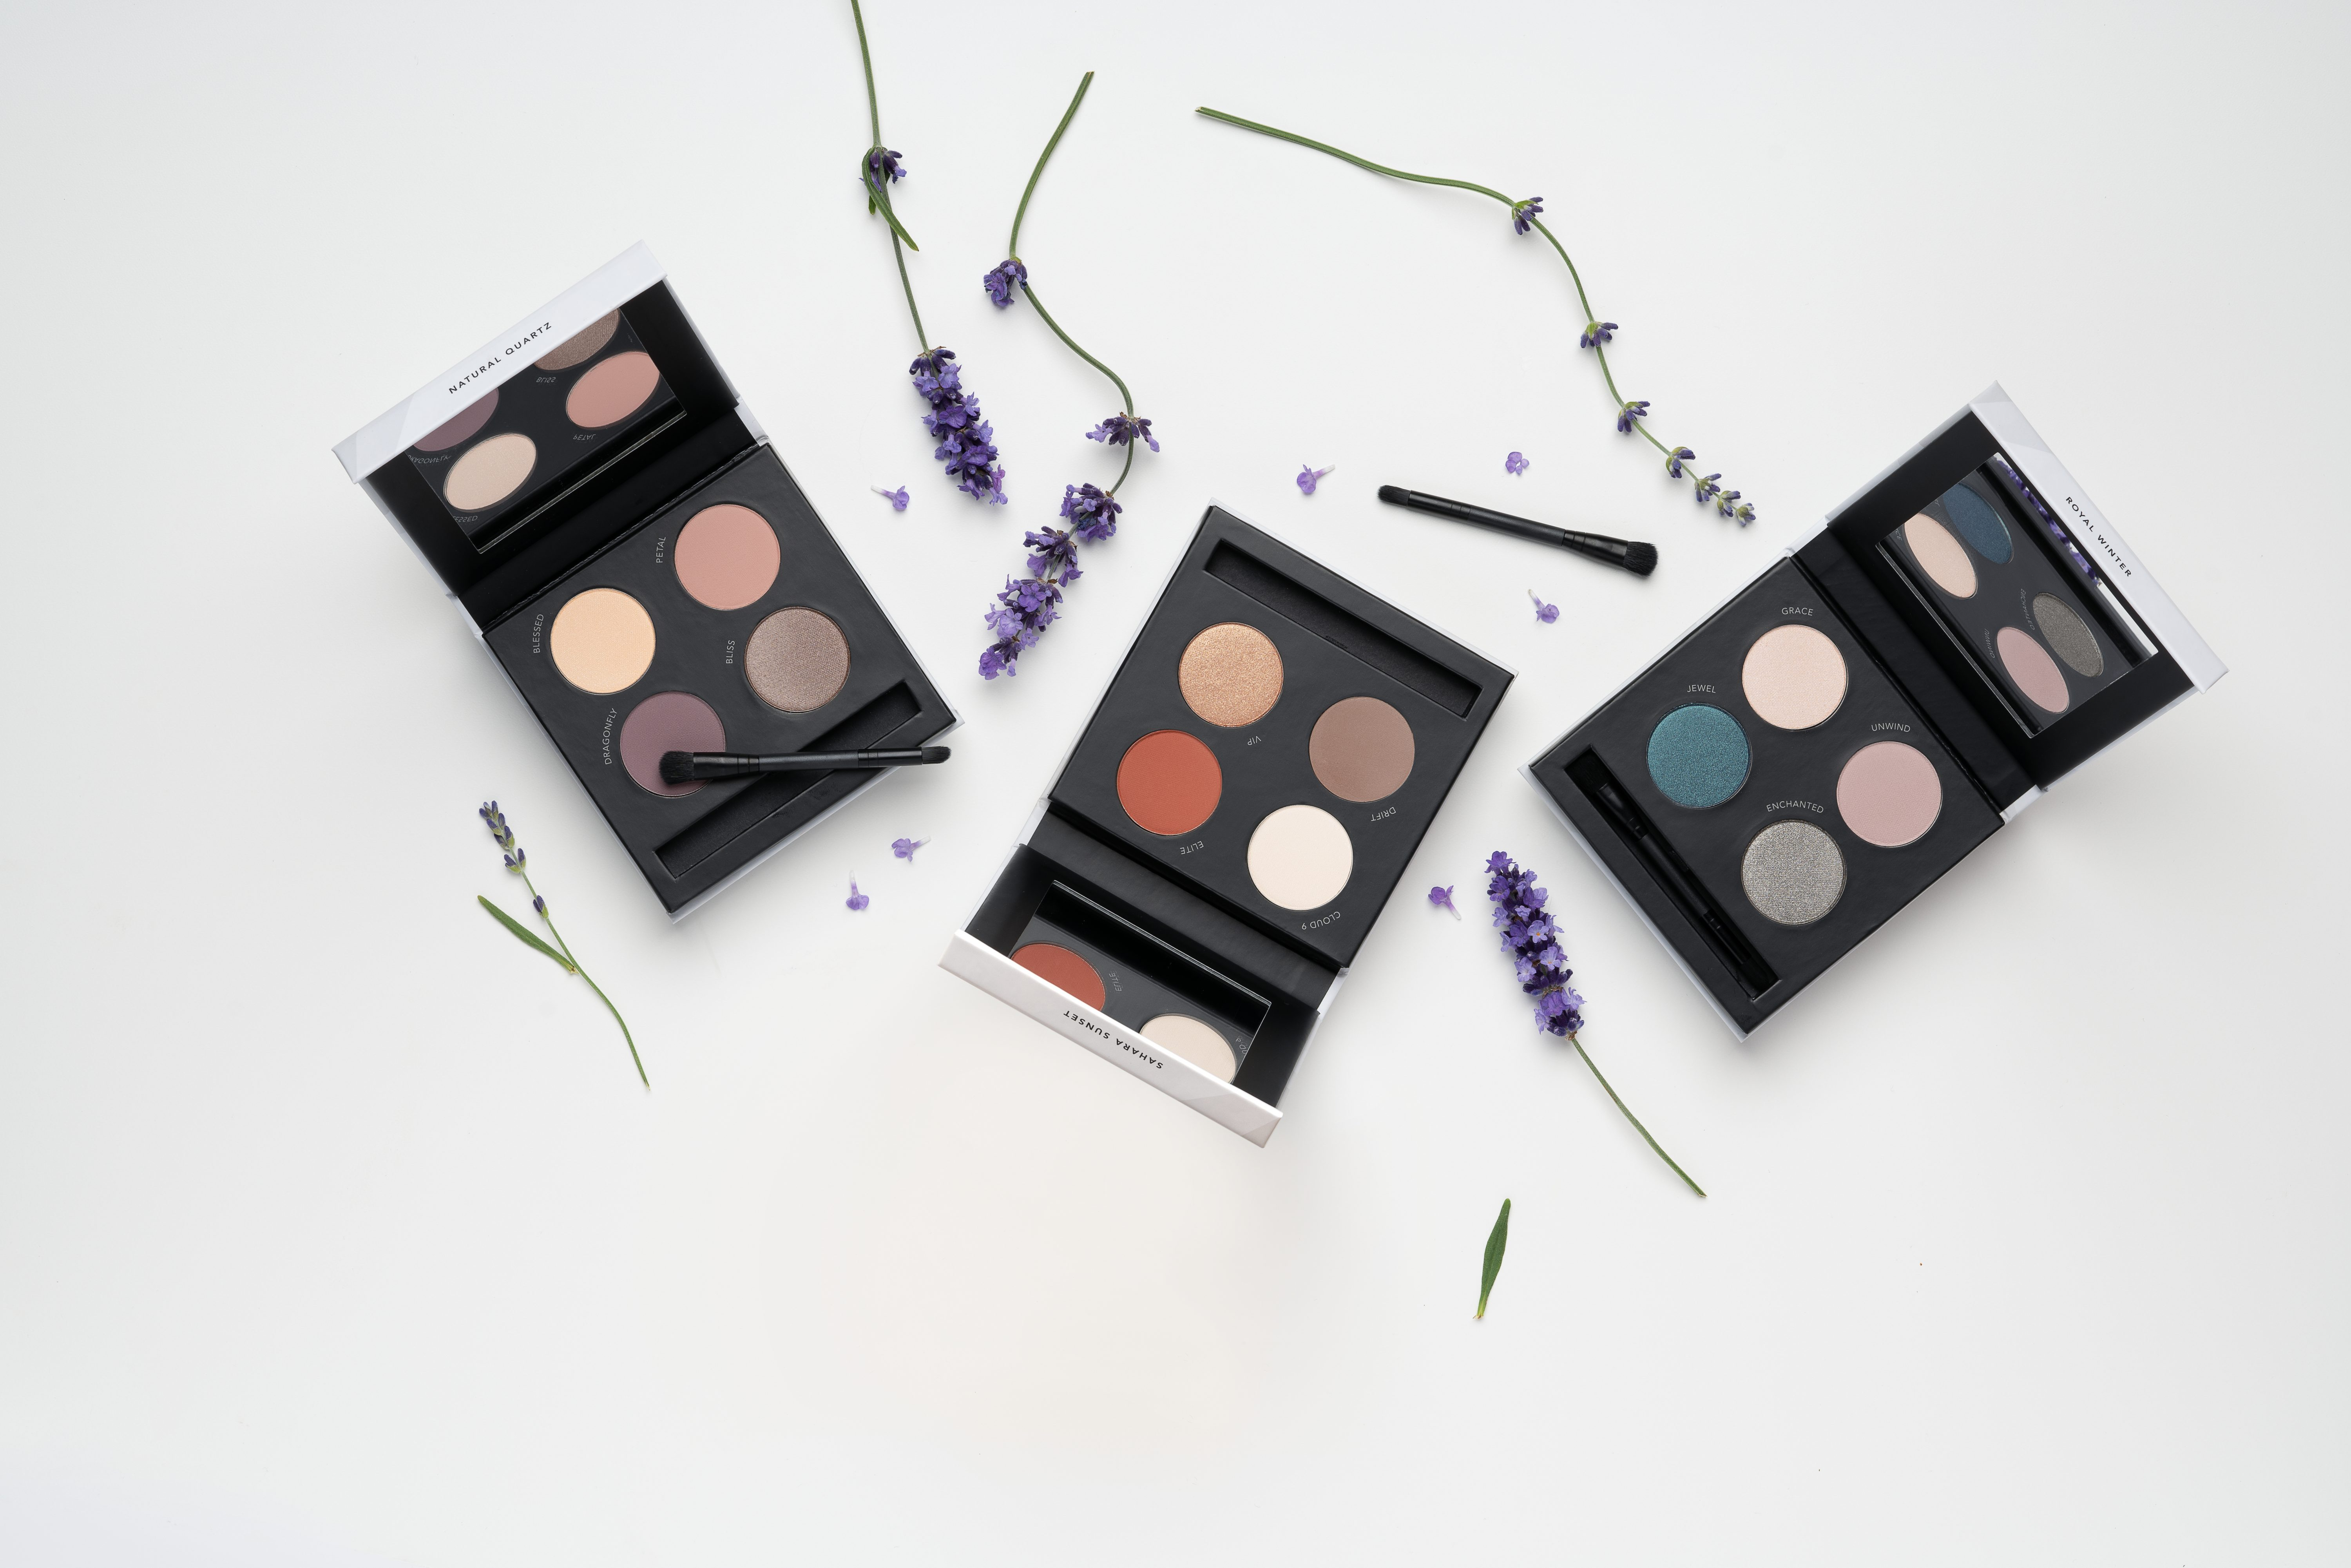 stocking stuffer ideas: makeup palettes in three shade families